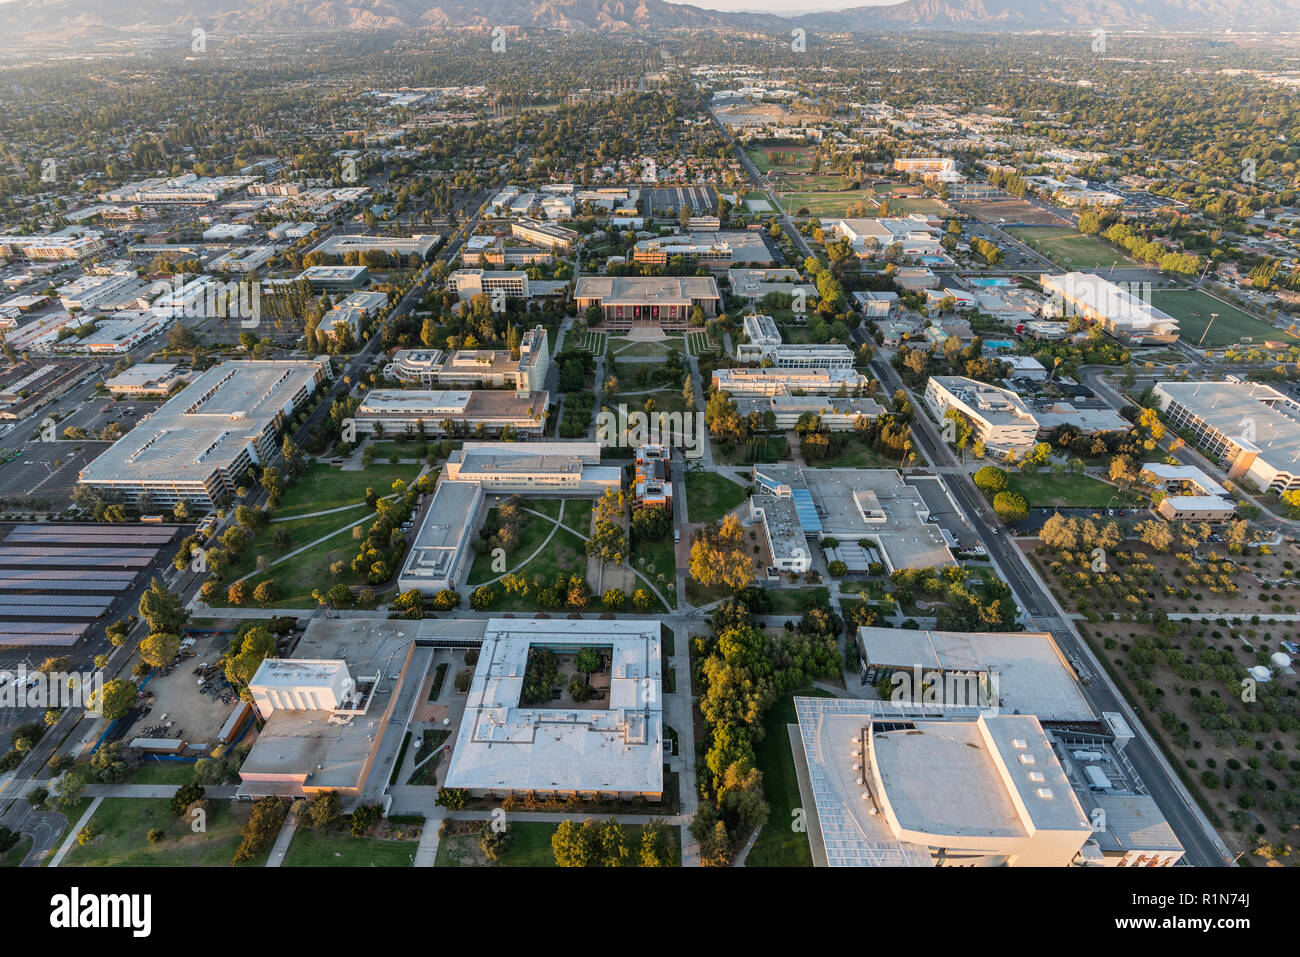 Los Angeles, California, USA - October 21, 2018:  Late afternoon aerial view of California State University Northridge campus facilities in the San Fe - Stock Image